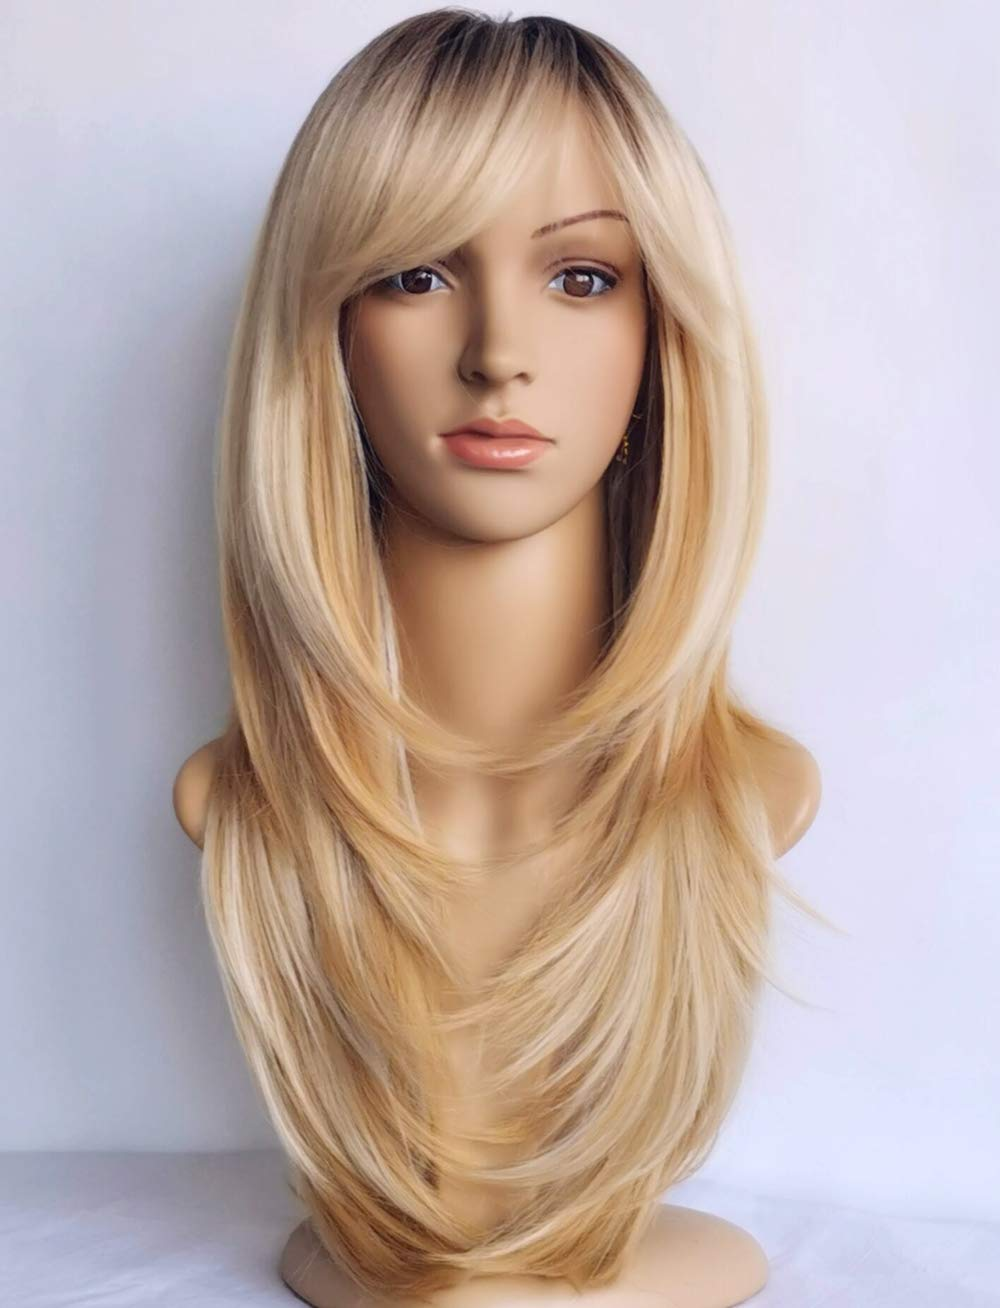 Wigbuy Long Layered Shoulder Length Blonde Synthetic Hair Fiber Highlight Multicolor With Dark Root For Women 1b 27 Buy Online In Aruba At Aruba Desertcart Com Productid 216523578